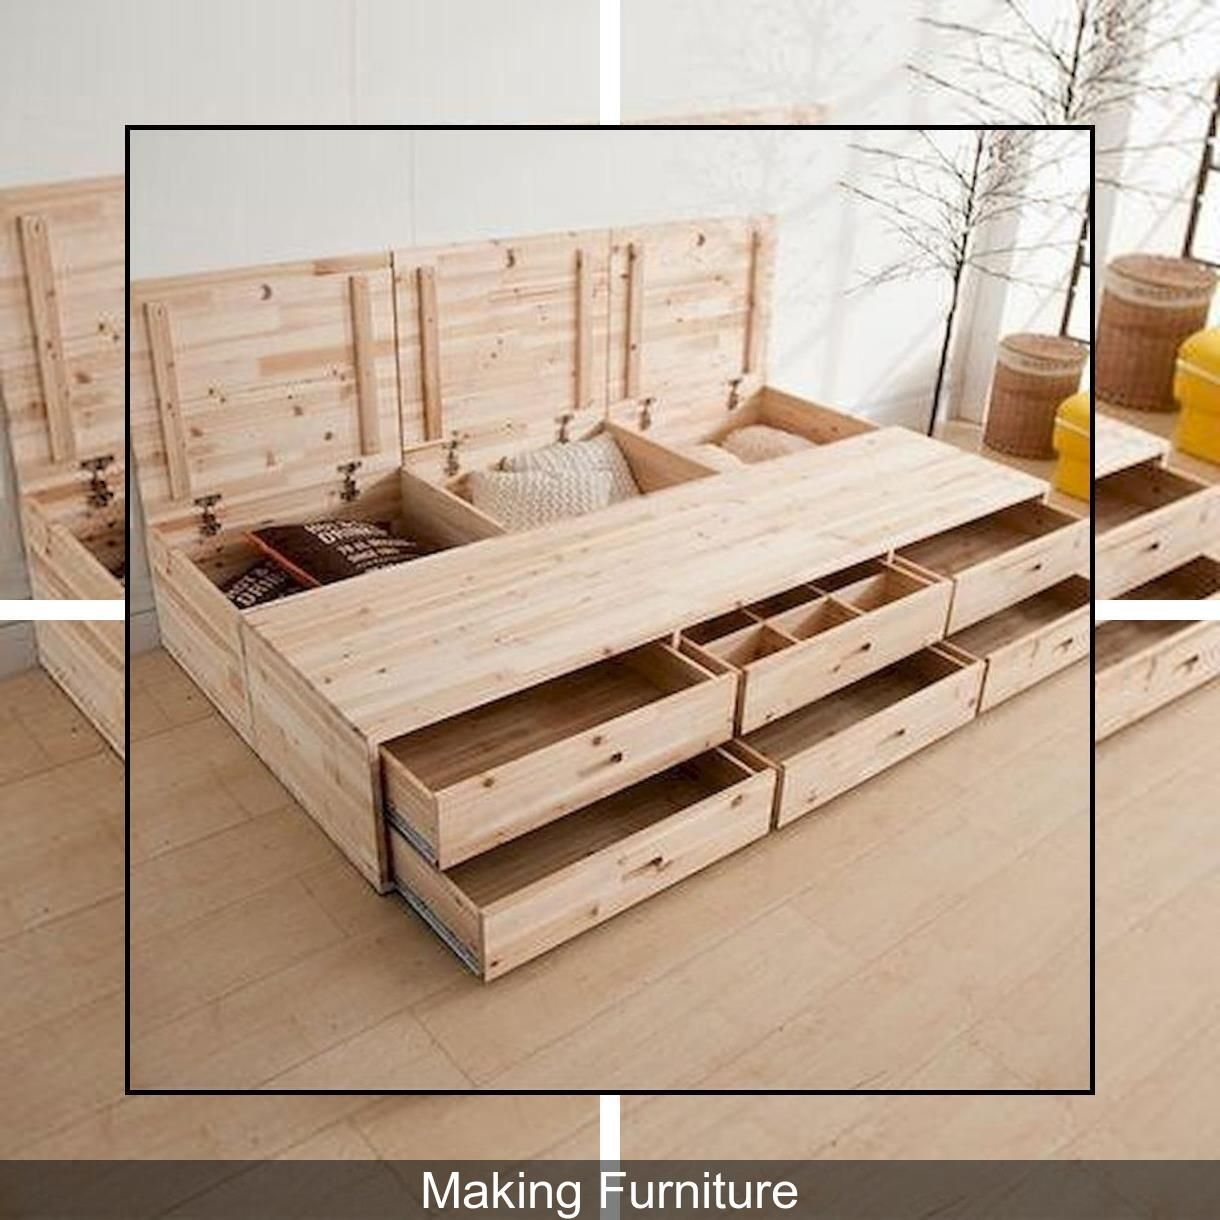 Diy Furniture Making Diy Home Building Self Made Wood